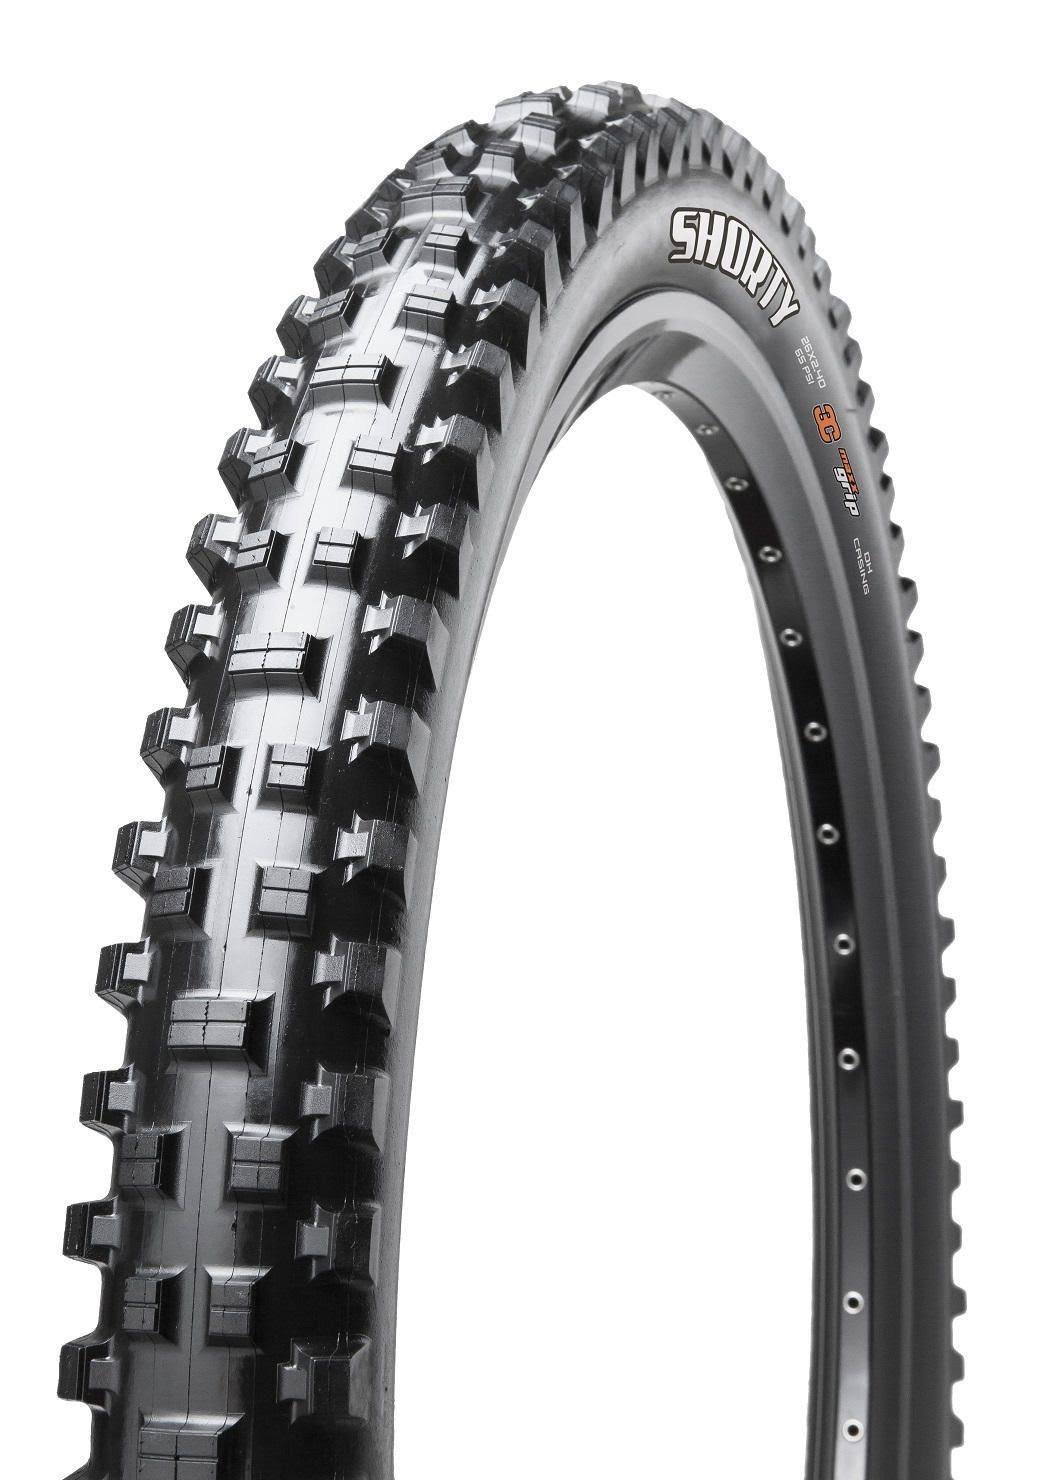 "Maxxis Shorty Wide EXO Tubeless Ready Trail Tire - 29"" x 2.5"", 60 TPI, 3C"